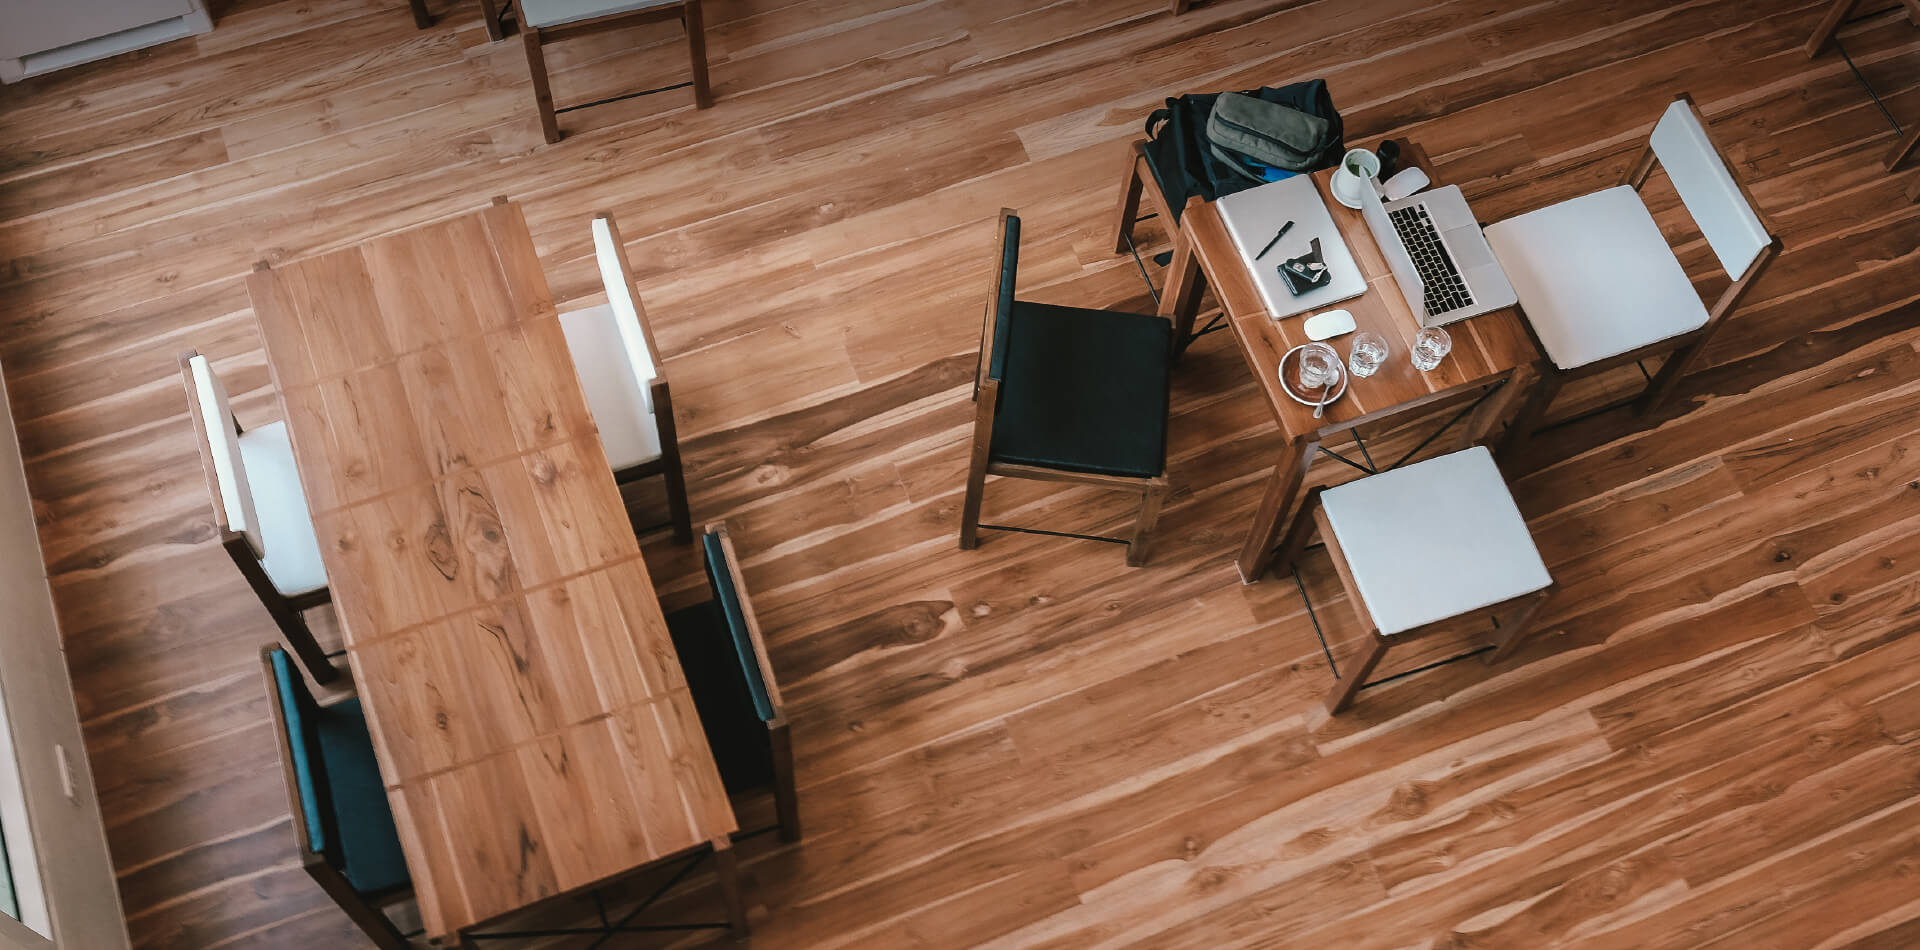 A room with wooden desks and flooring